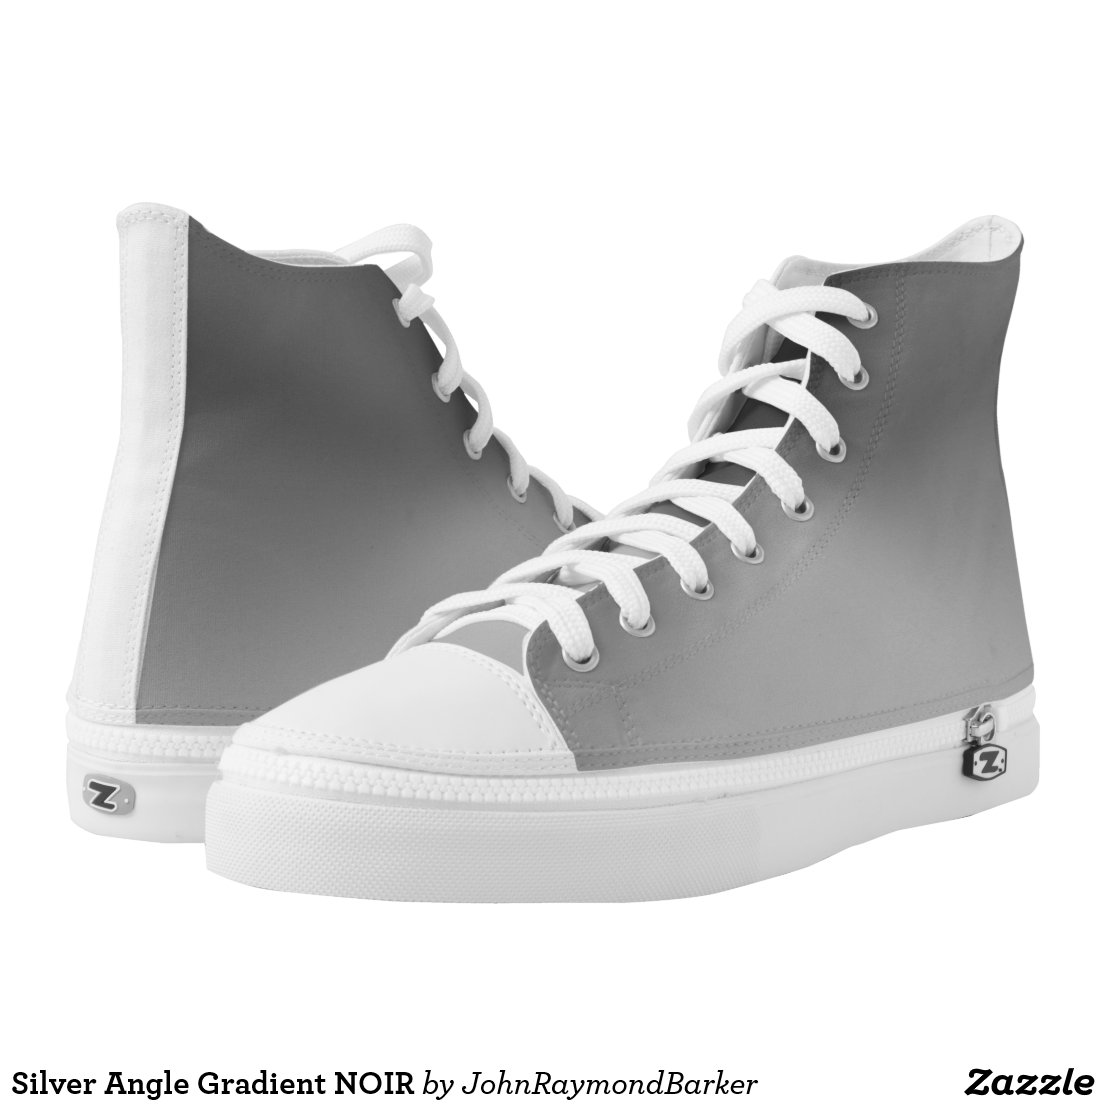 Silver Angle Gradient NOIR High-Top Sneakers